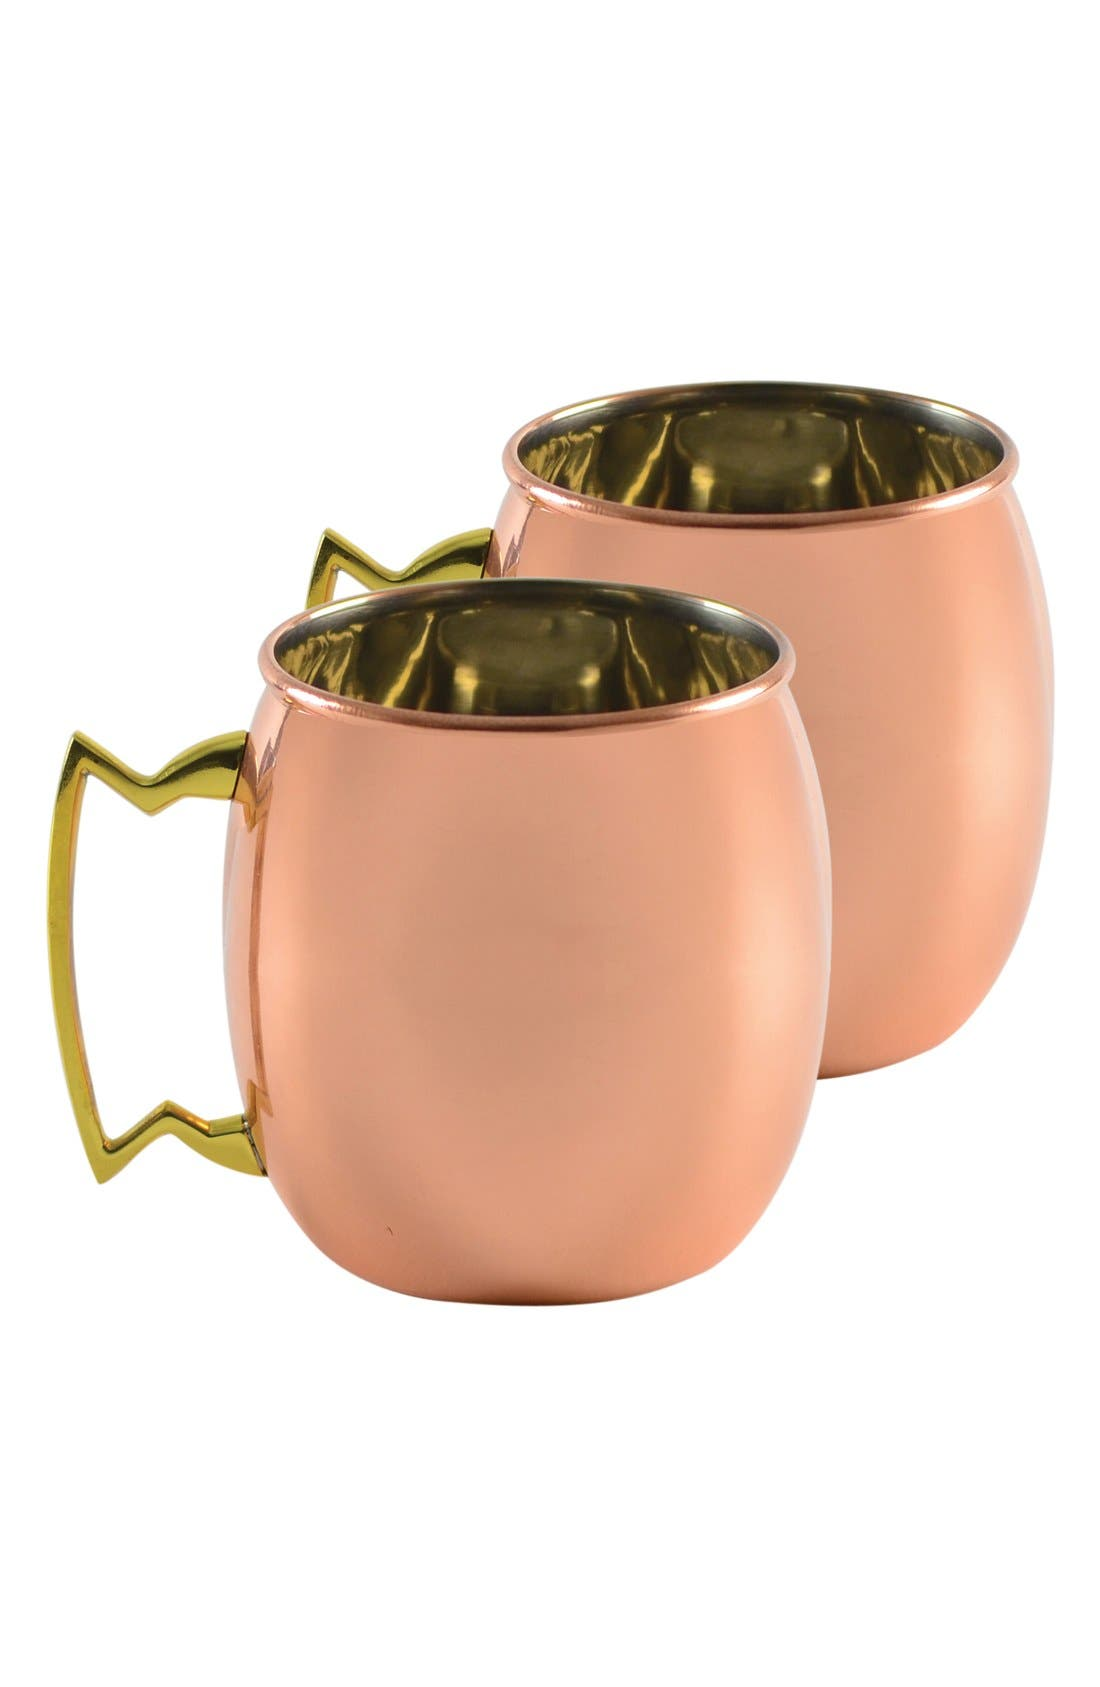 Alternate Image 1 Selected - 10 Strawberry Street 'Moscow Mule' Copper Mugs (Set of 2)